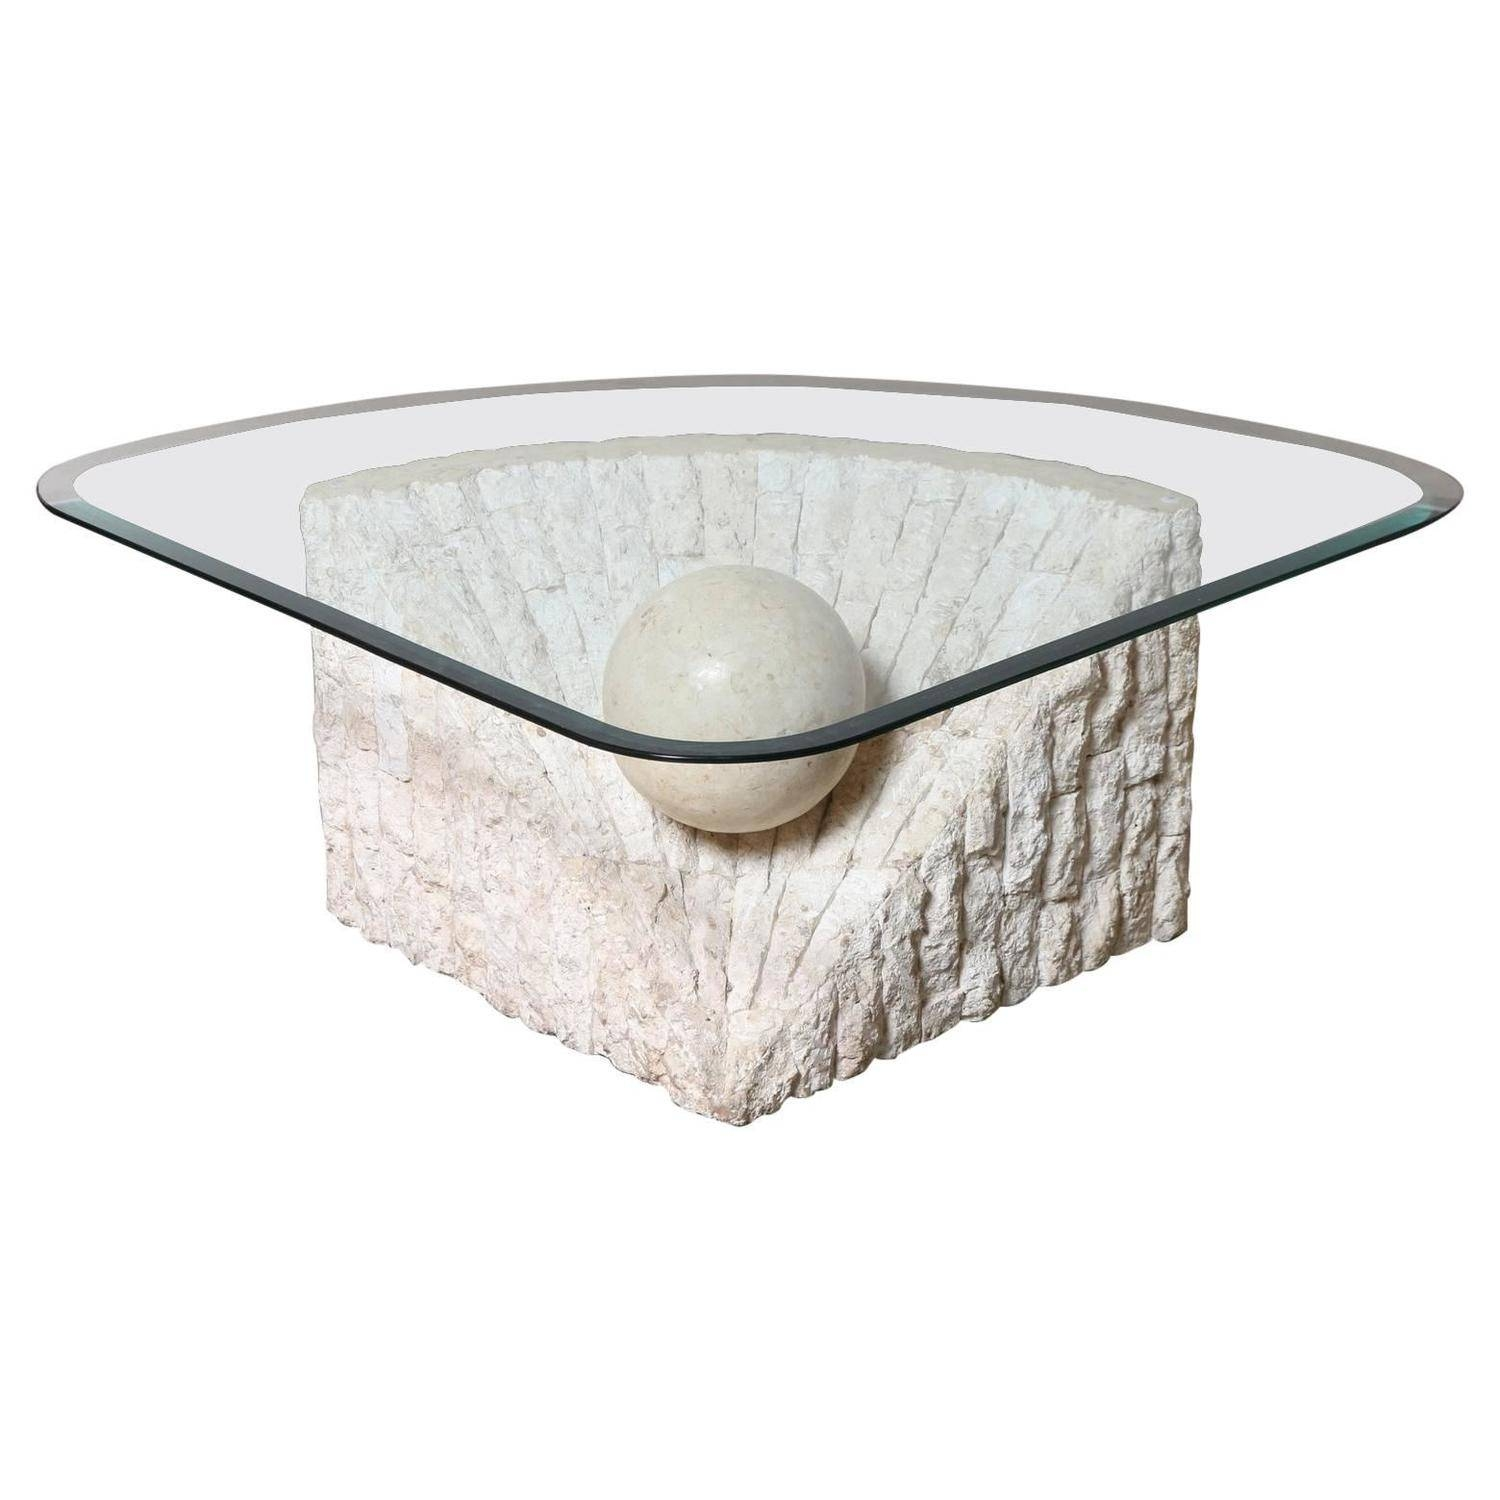 Triangular Marble And Travertine Coffee Table With Beveled Edge Throughout Stone And Glass Coffee Tables (View 5 of 15)